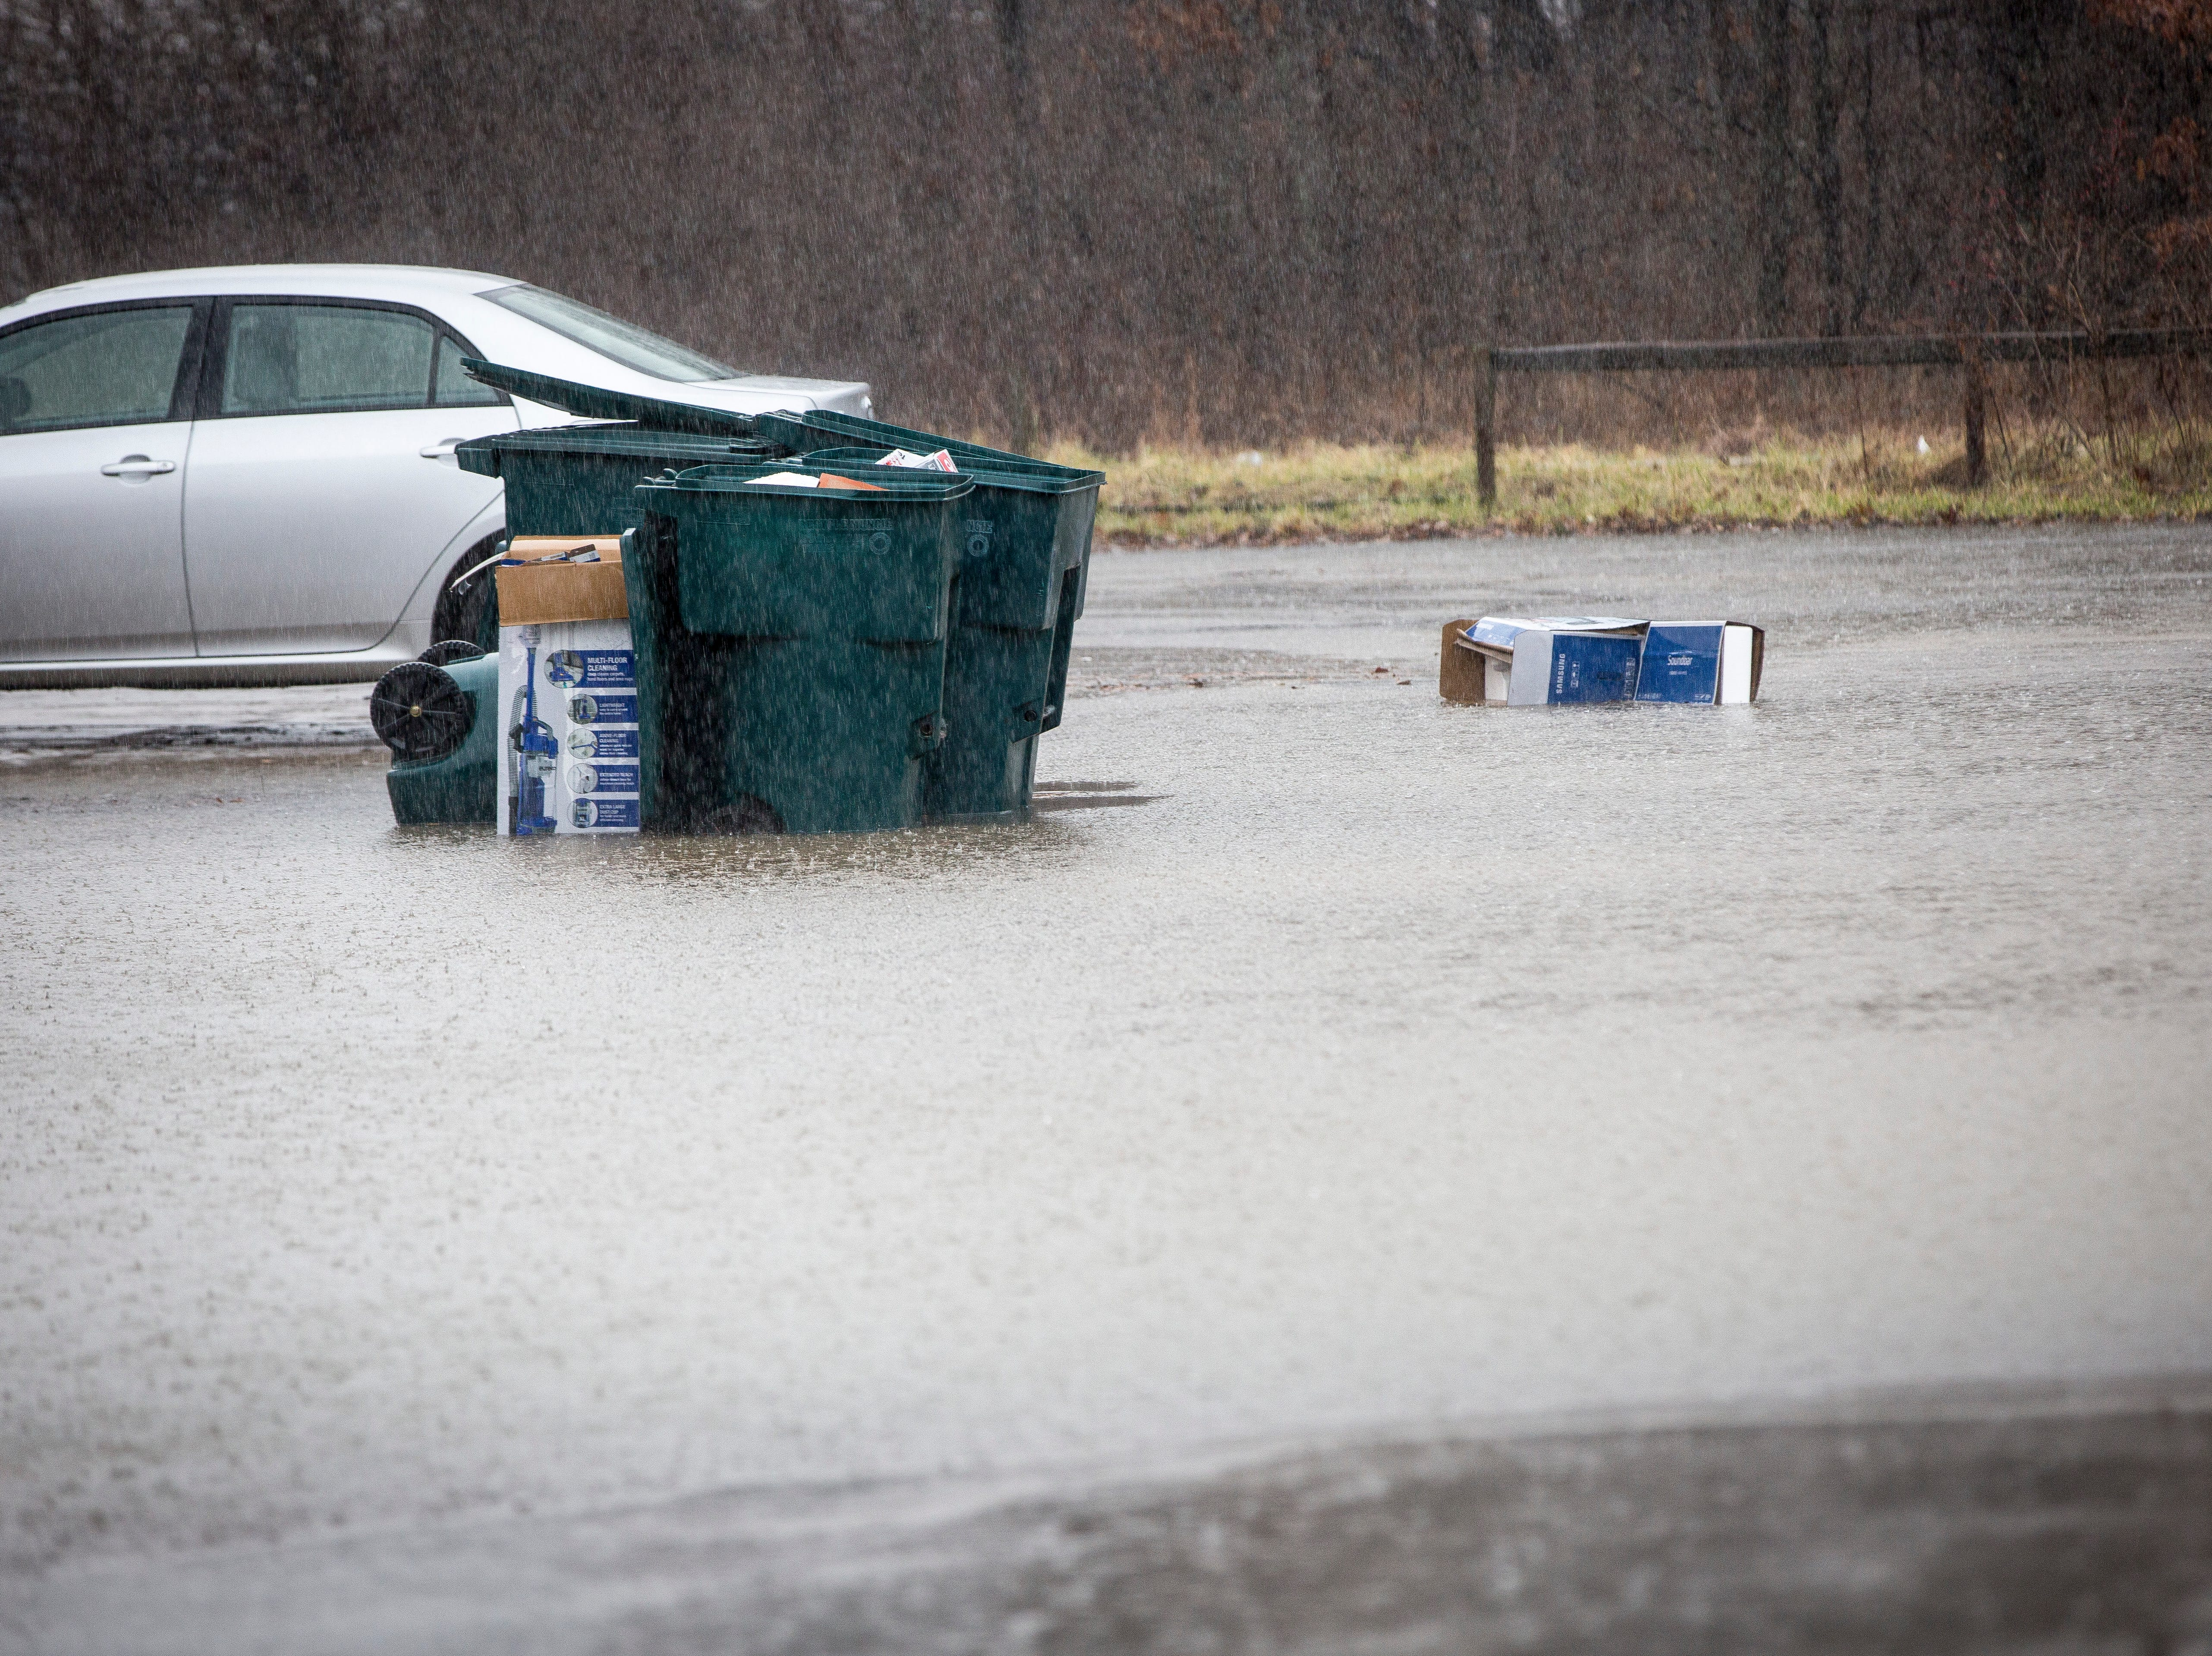 Steady rainfall caused minor flooding across the area Monday afternoon as the National Weather Service reported rainfall up to one inch in most of the area. Delaware County will be under a flood advisory until later Monday night.